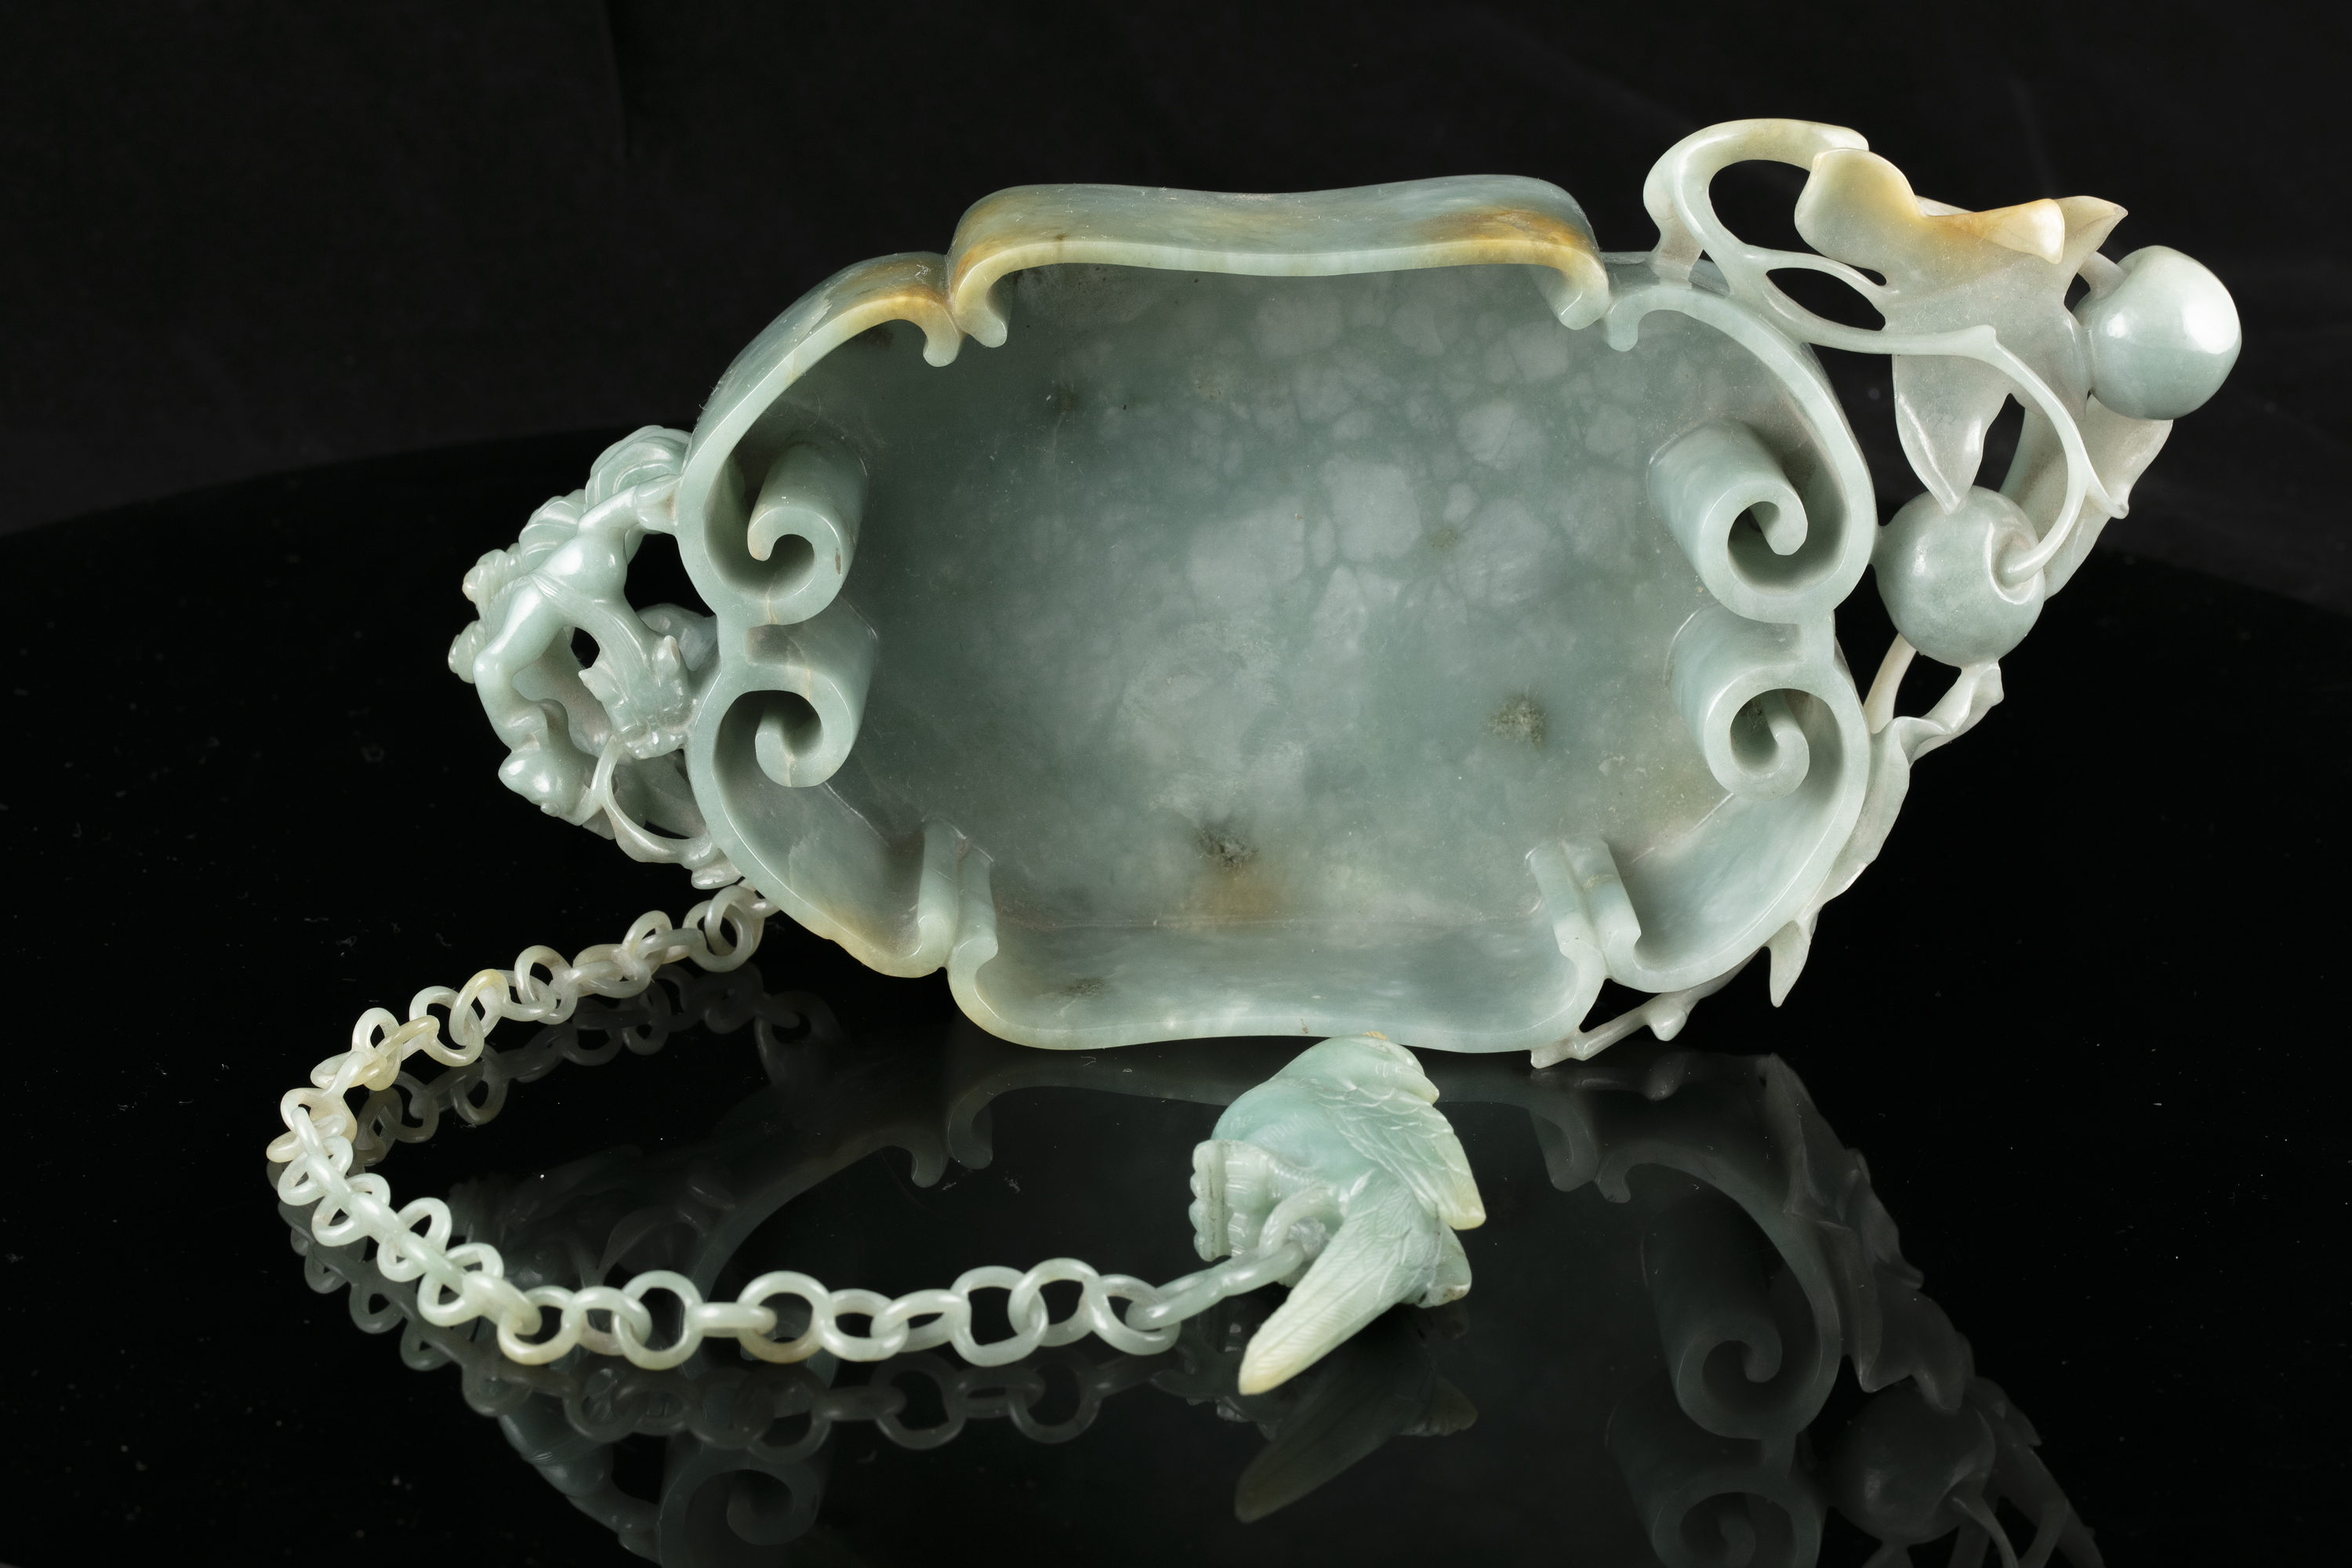 A LINGZHI-SHAPED JADEITE JADE BRUSHWASHER WITH A PARROT China, Qing Dynasty, 19th century - Image 21 of 35